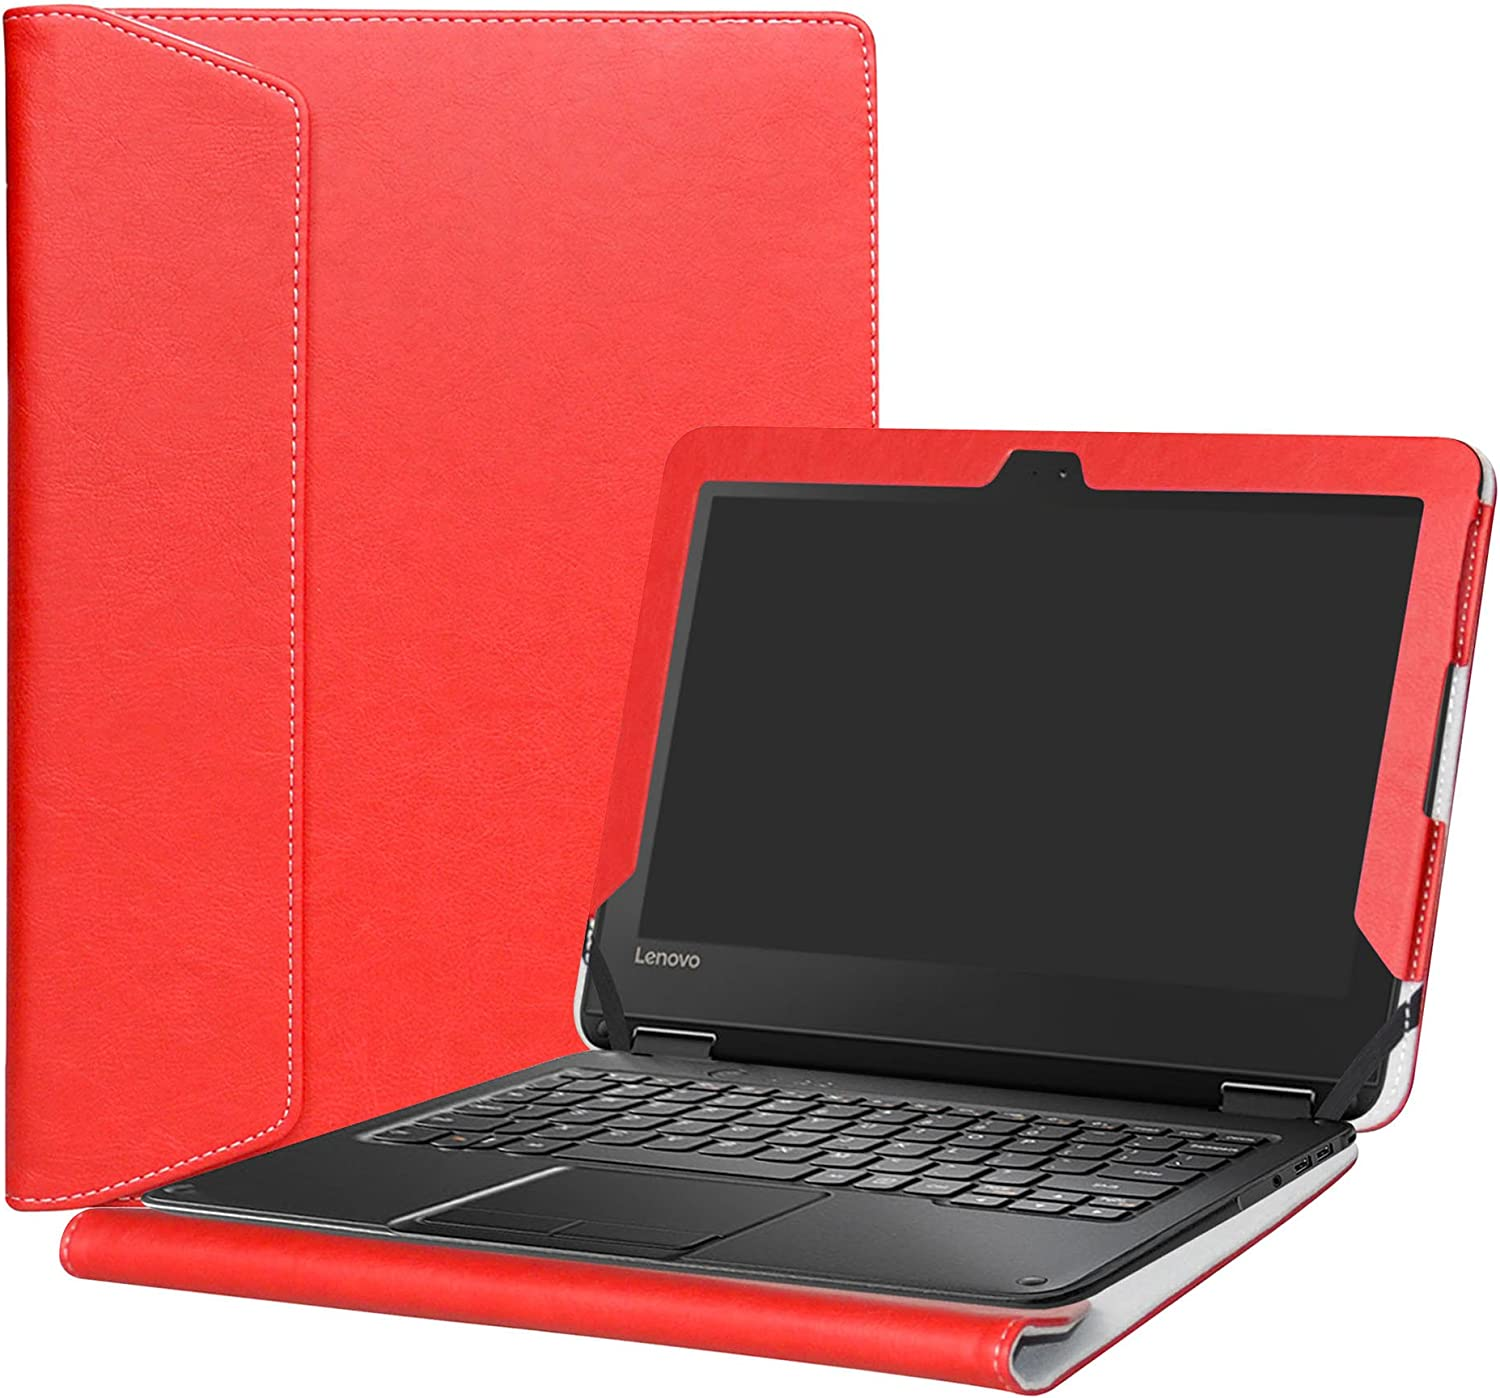 "Alapmk Protective Case Cover for 11.6"" Lenovo N24 Windows & Lenovo N23 Windows/Lenovo 300e Windows Laptop(Warning:Not fit Lenovo N23 Chromebook/N23 Yoga Chromebook/Lenovo 300e Chromebook),Red"